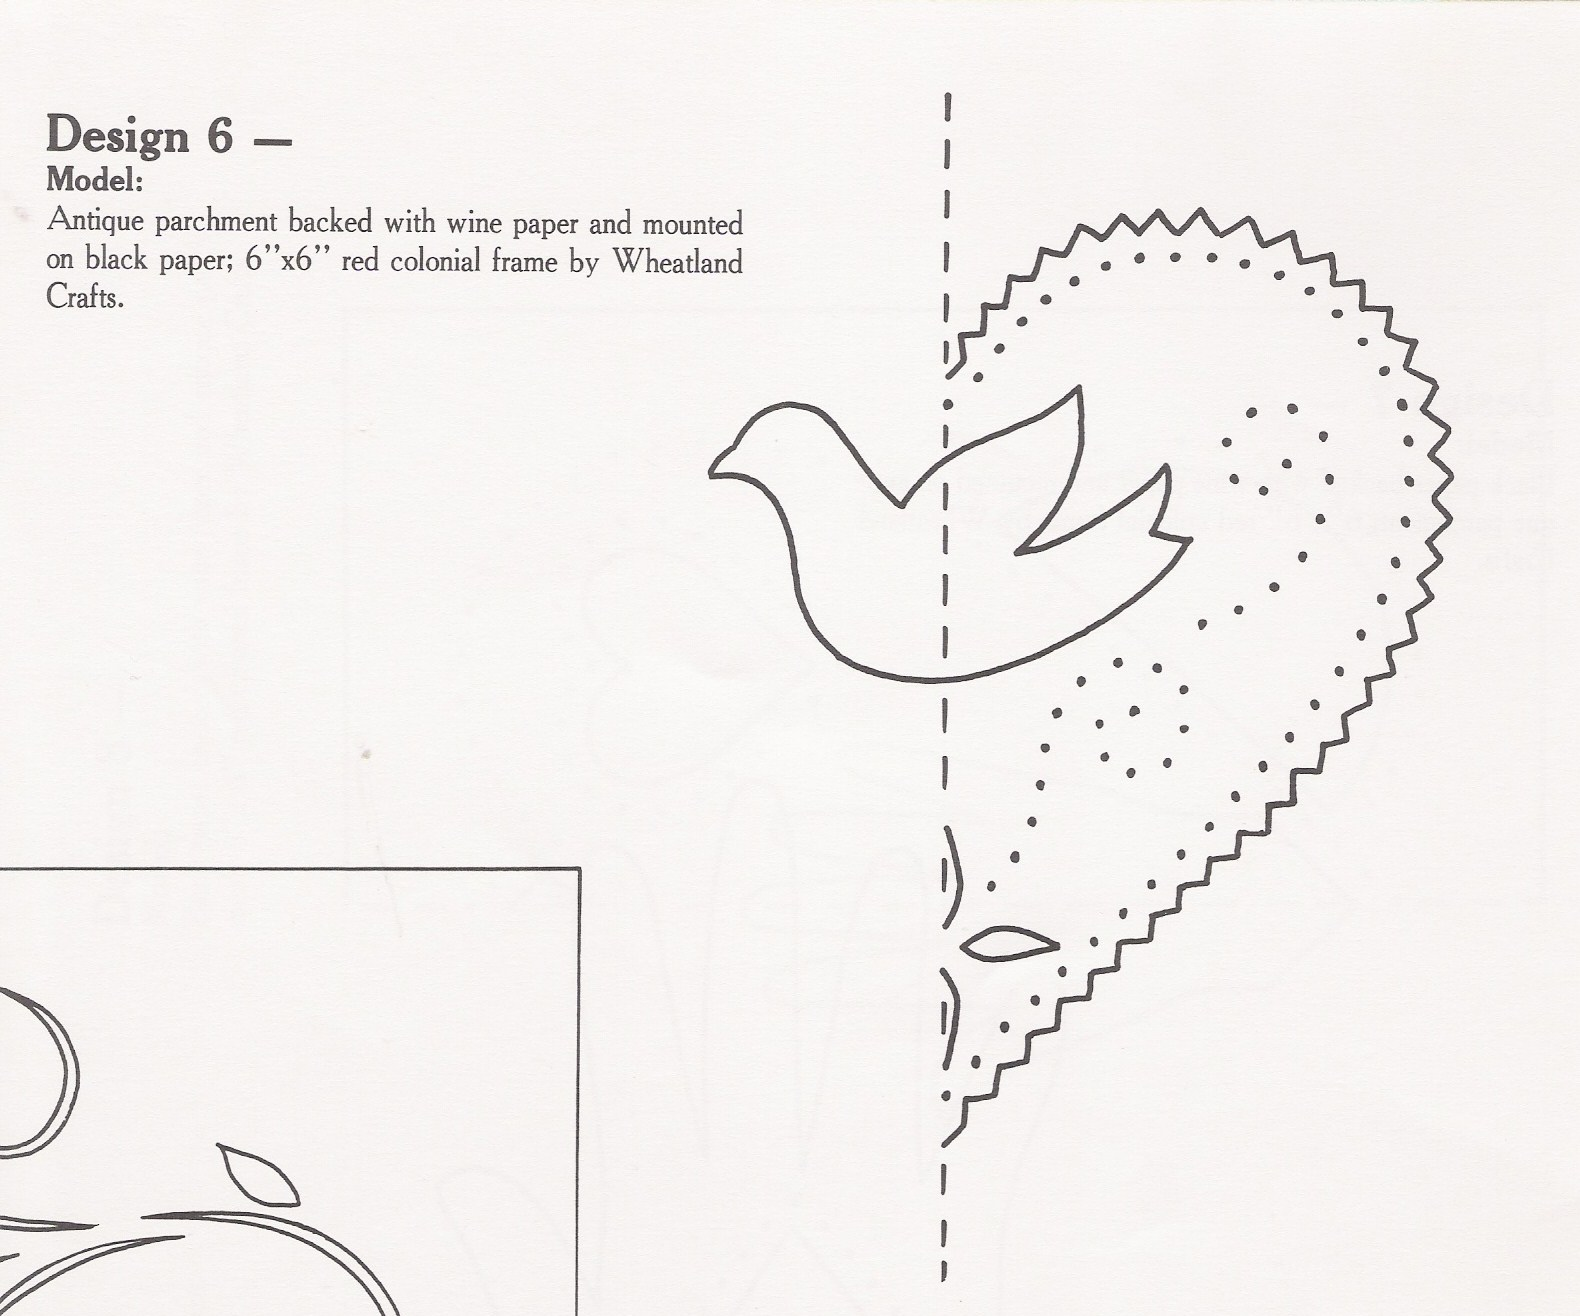 How to draw a bird nest inkspired musings Birds Birds and more